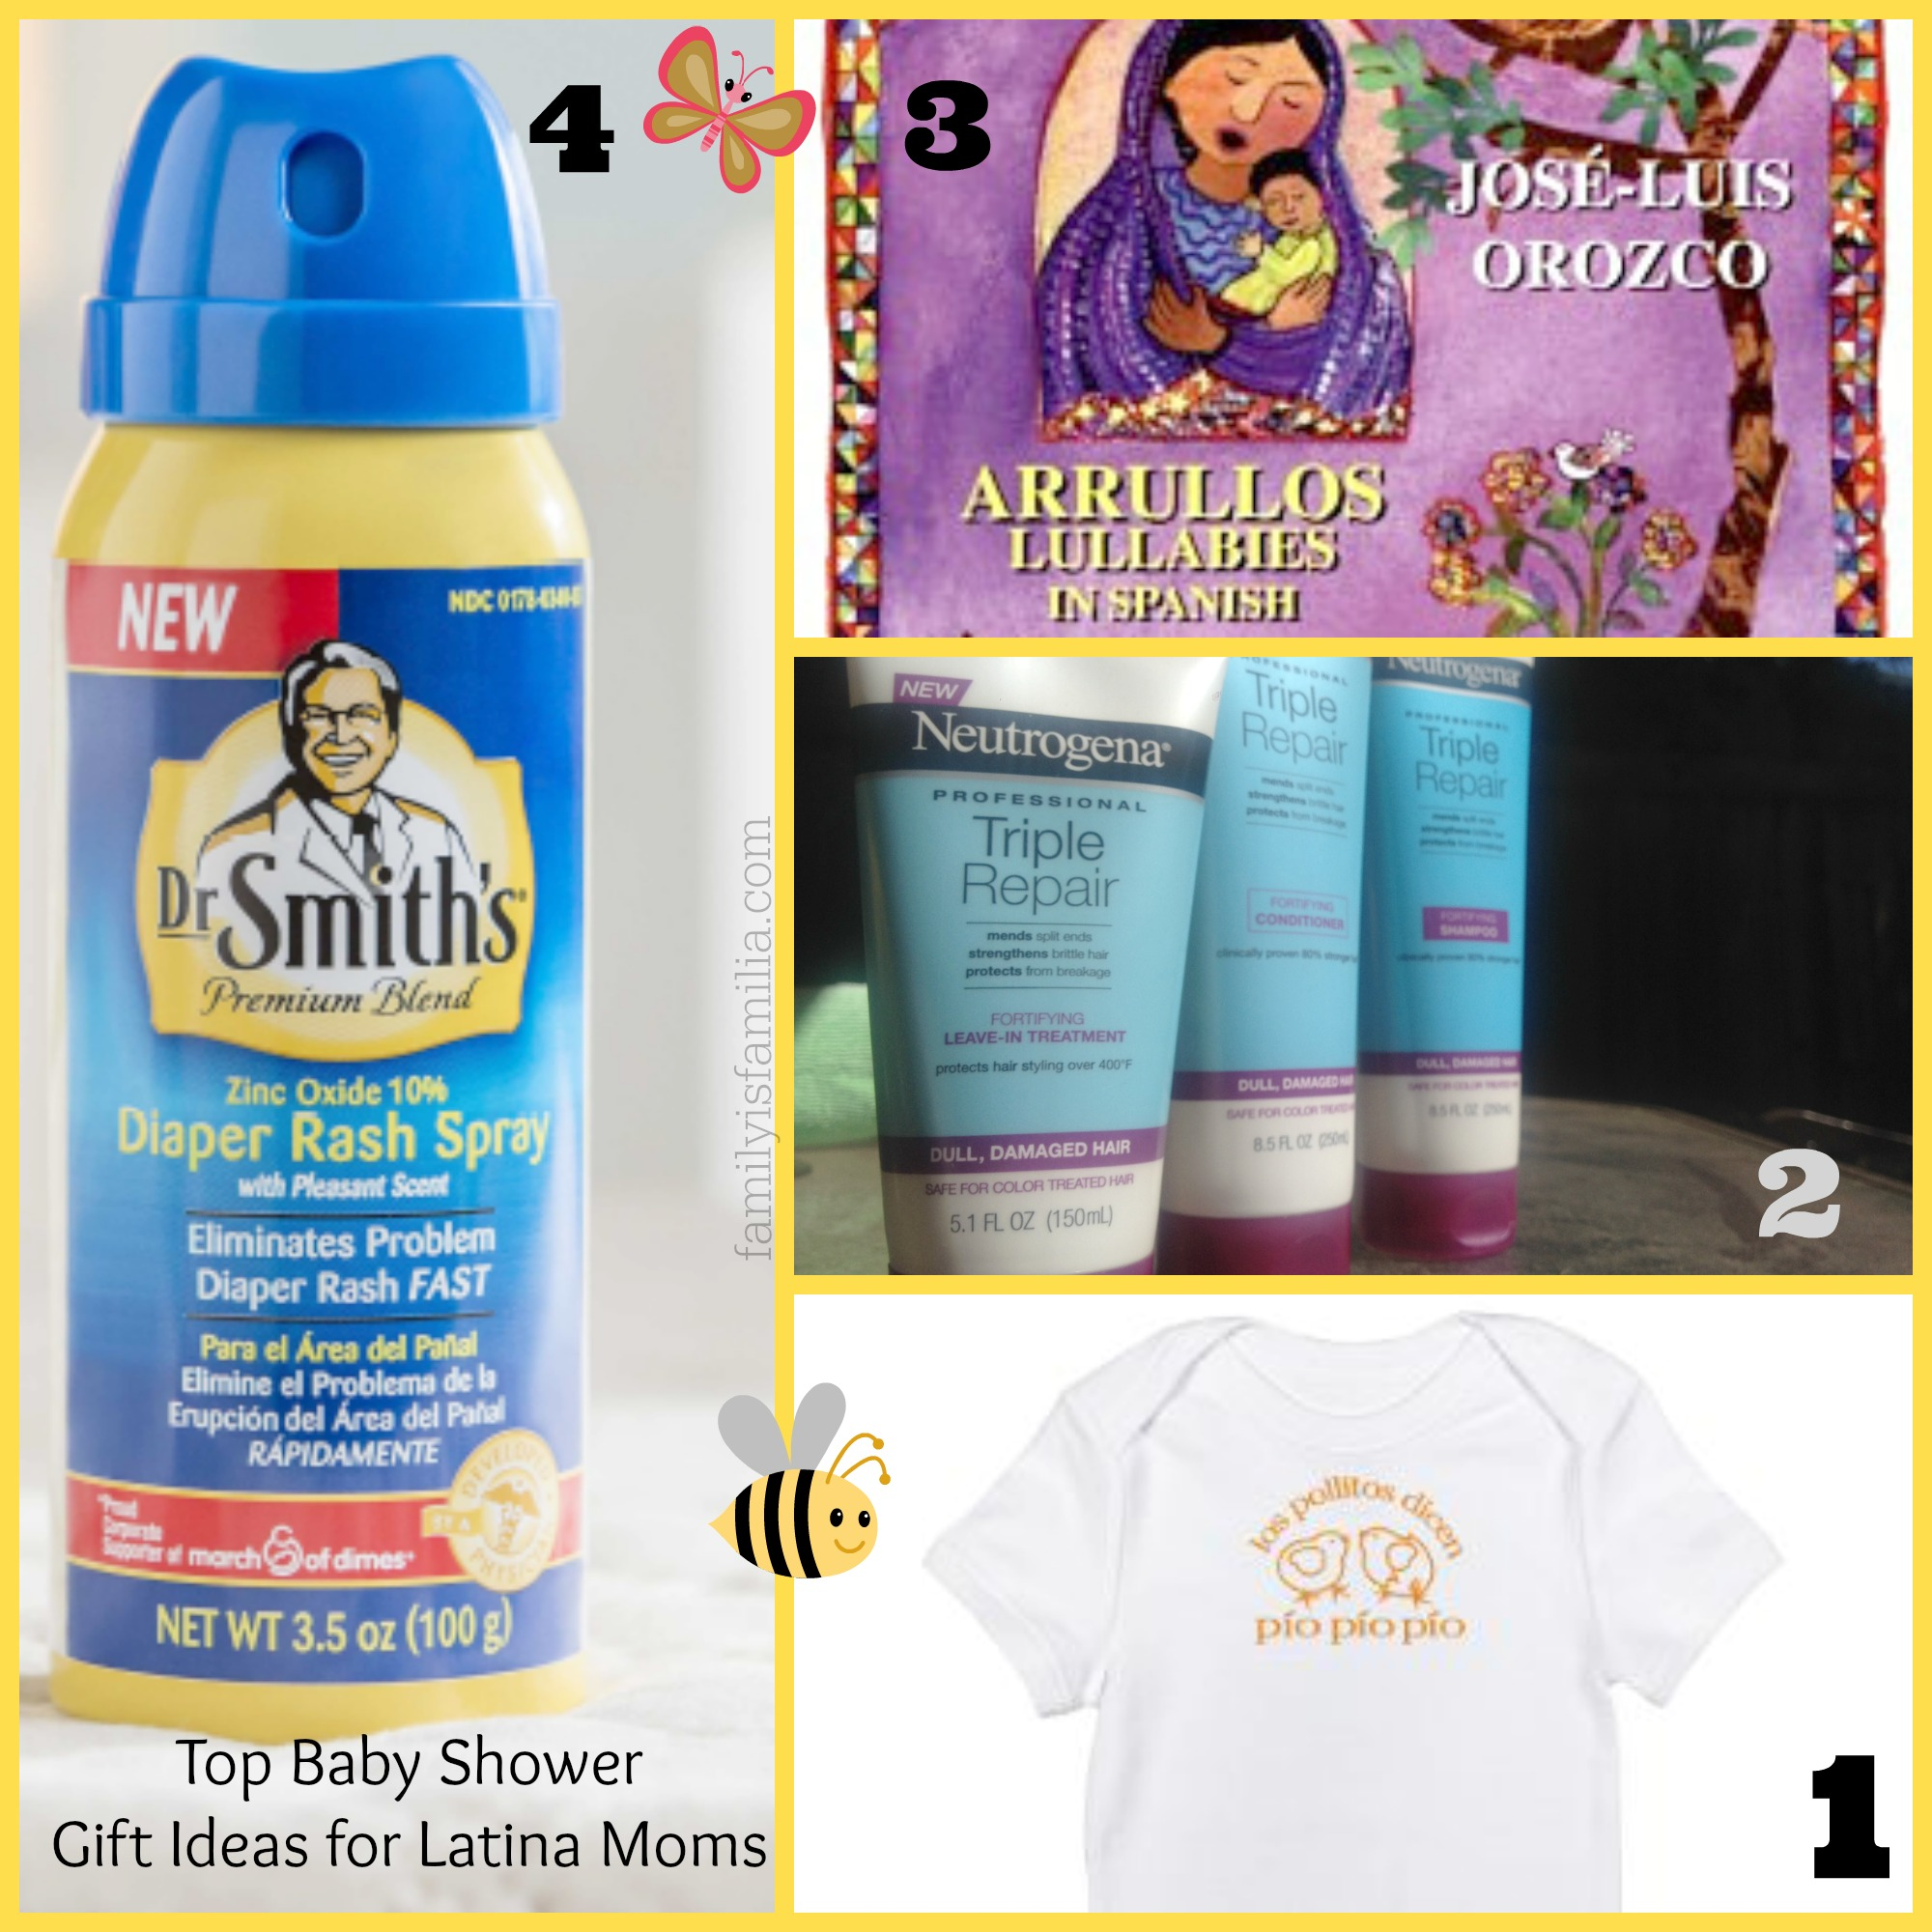 top-baby-shower-gift-ideas-latina-moms